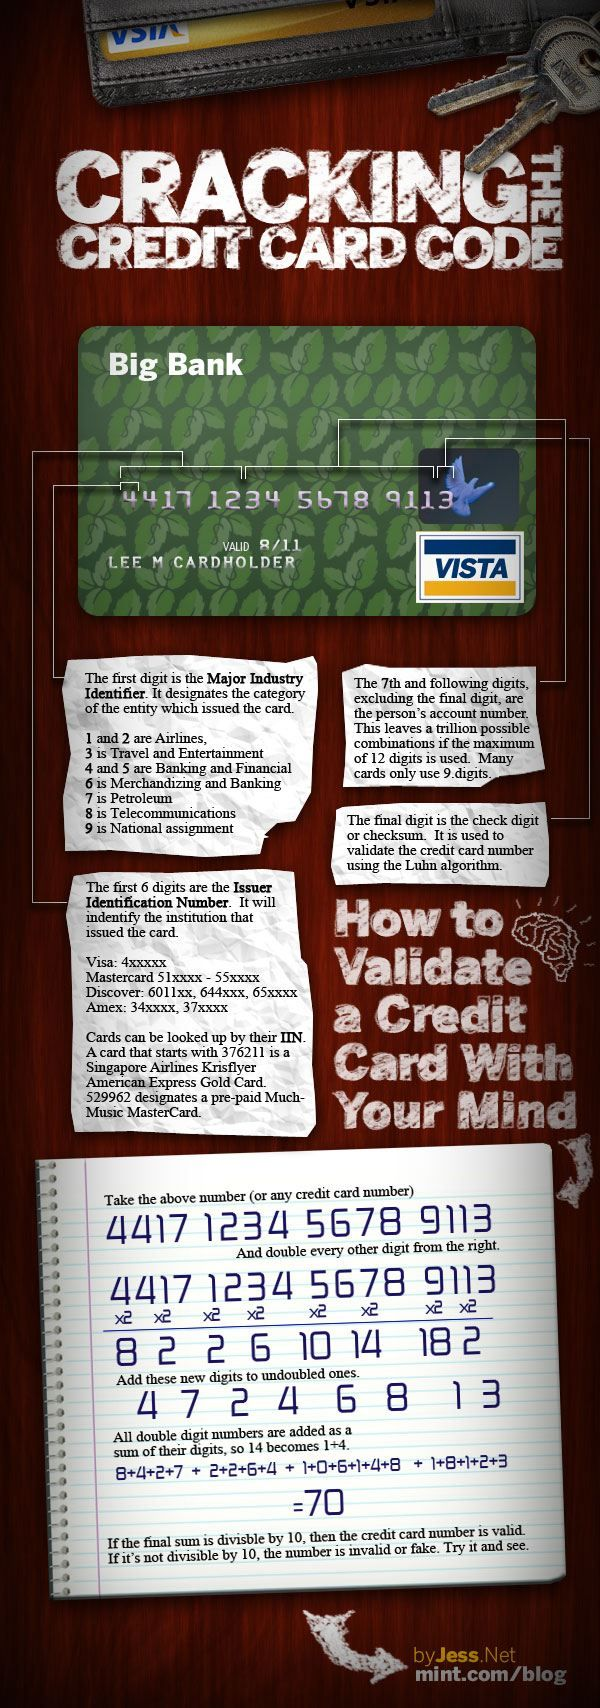 Cracking The Credit Card CodeMath, Numbers, Social Media, Credit Cards, Creditcard, Cards Codes, Education, Infographic, Info Graphics